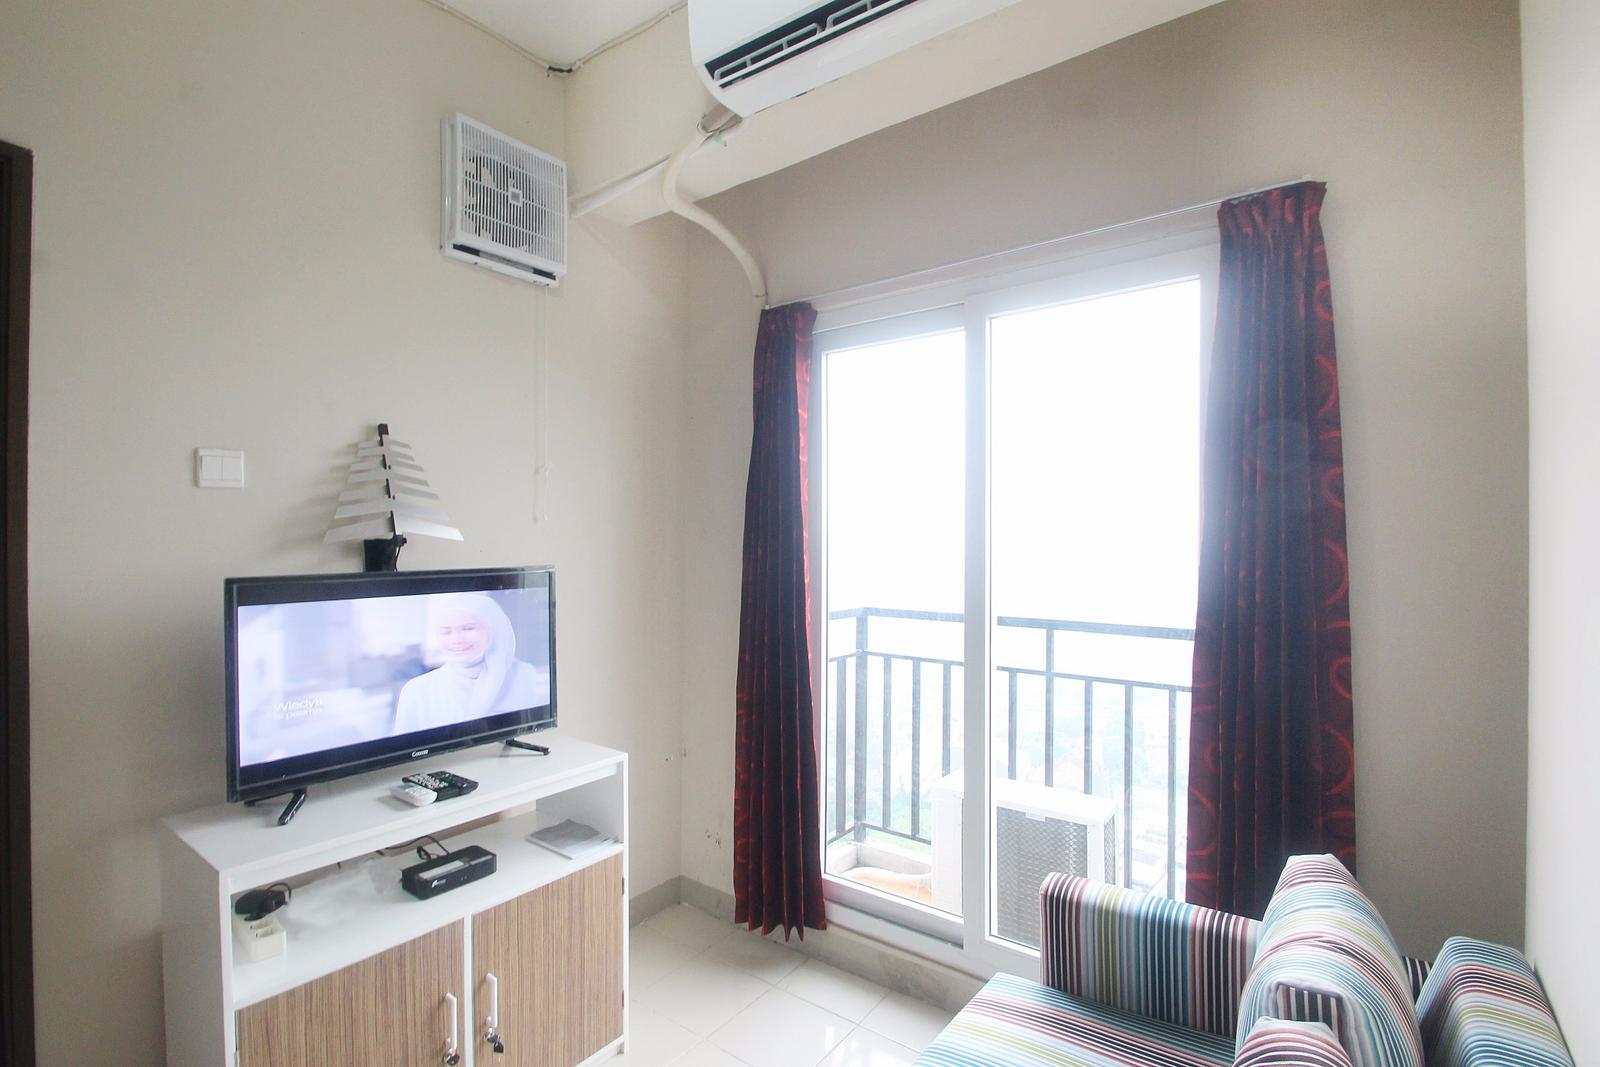 Apartemen Sunter Park View - 1 BR Simple Home @ Sunter Park View Apartment By The Condotel